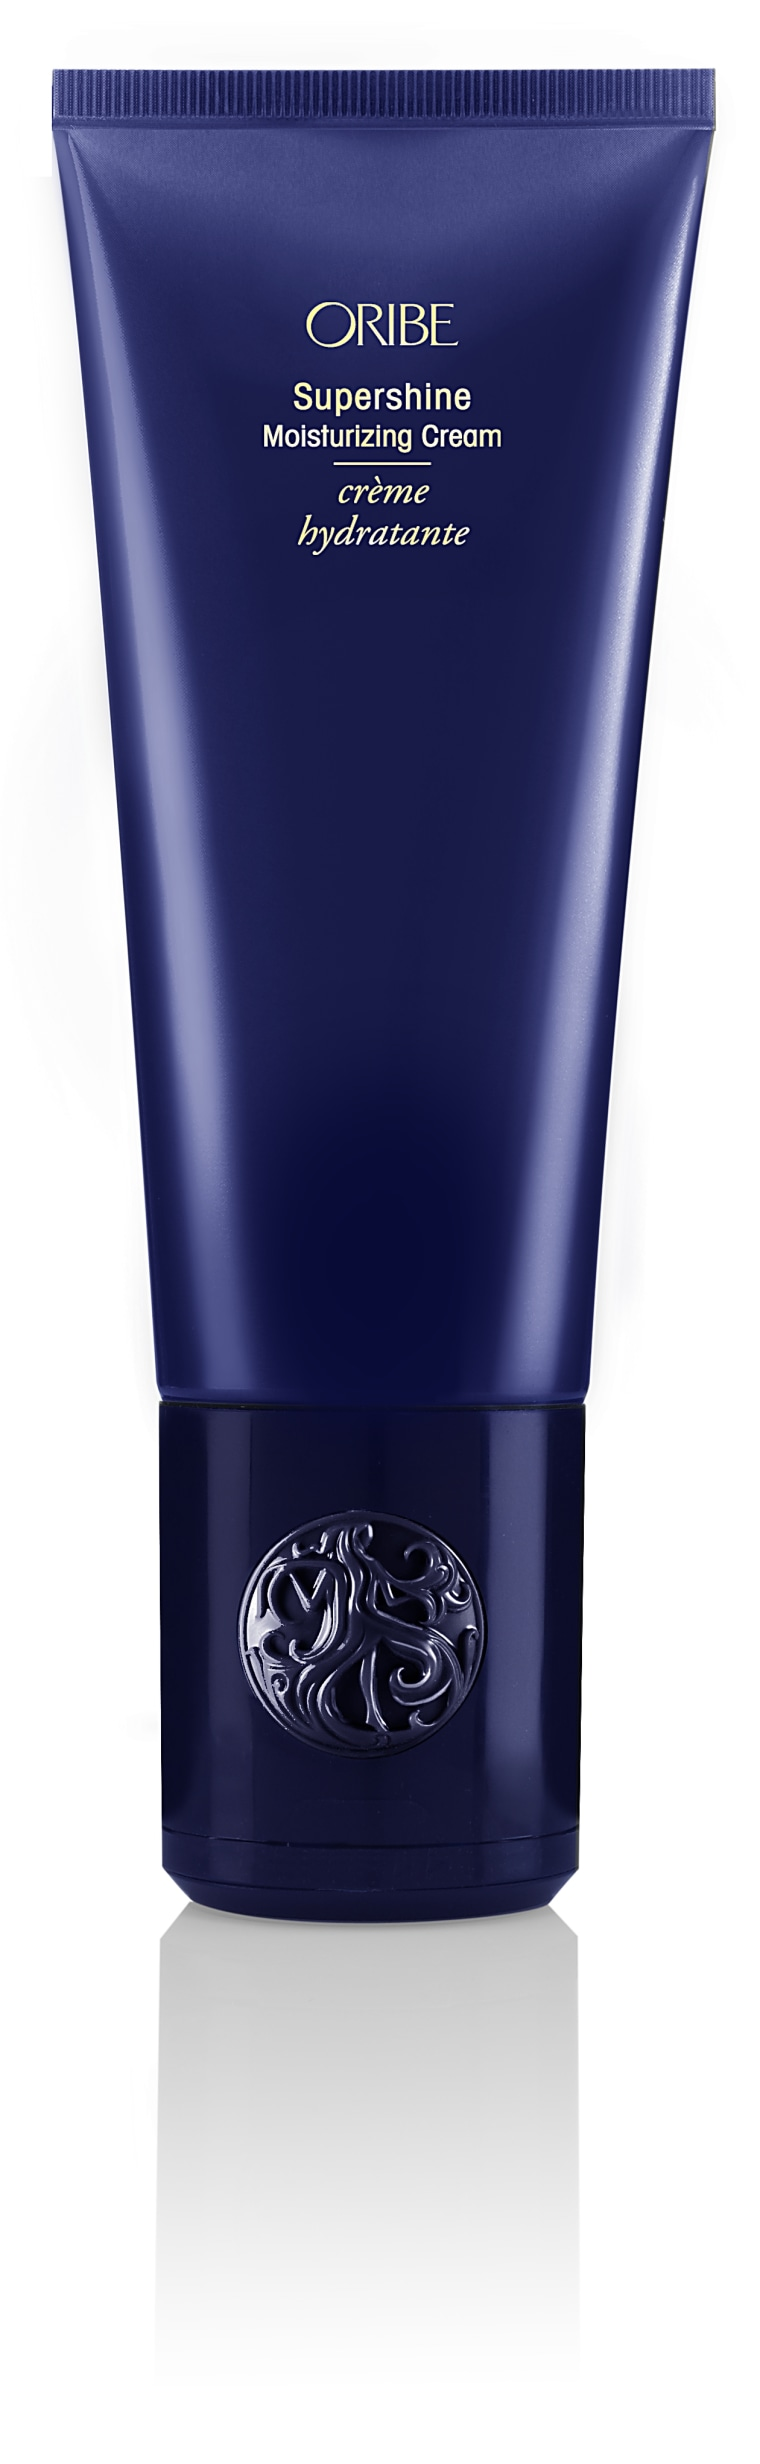 Oribe Supershine Moisturizing Cream Travel Size